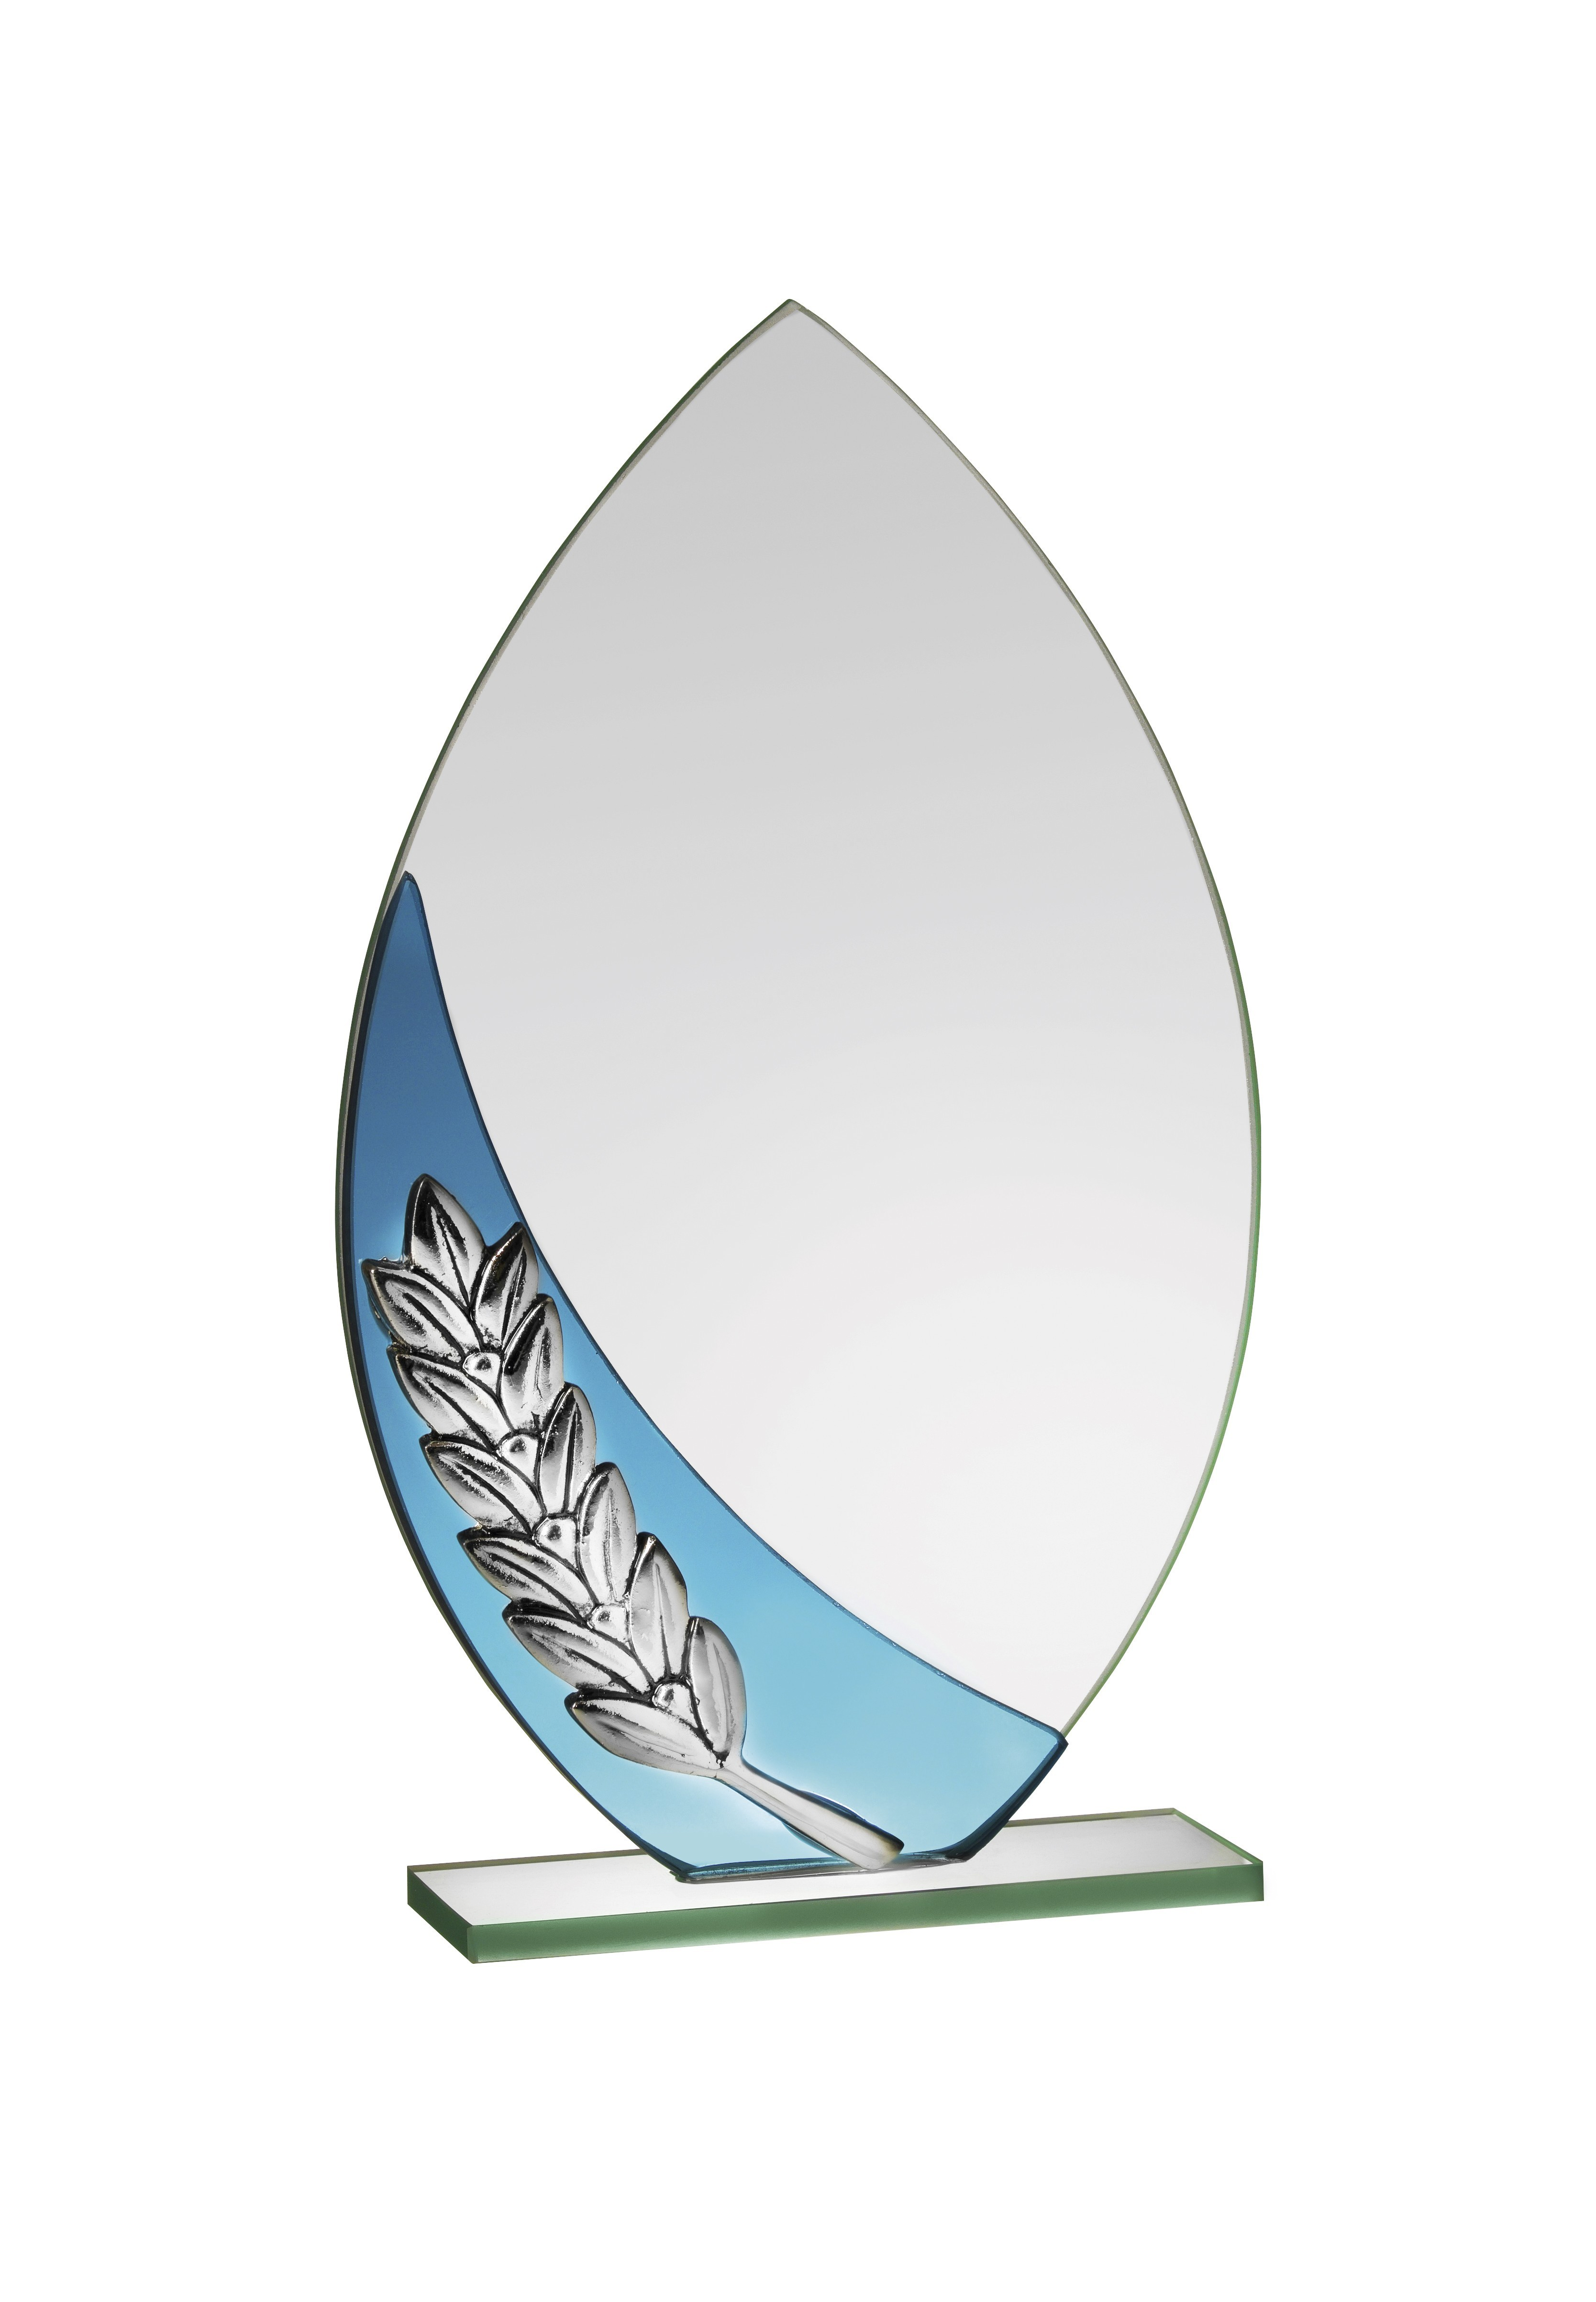 Oval glass award with silver laurel on an aqua wave